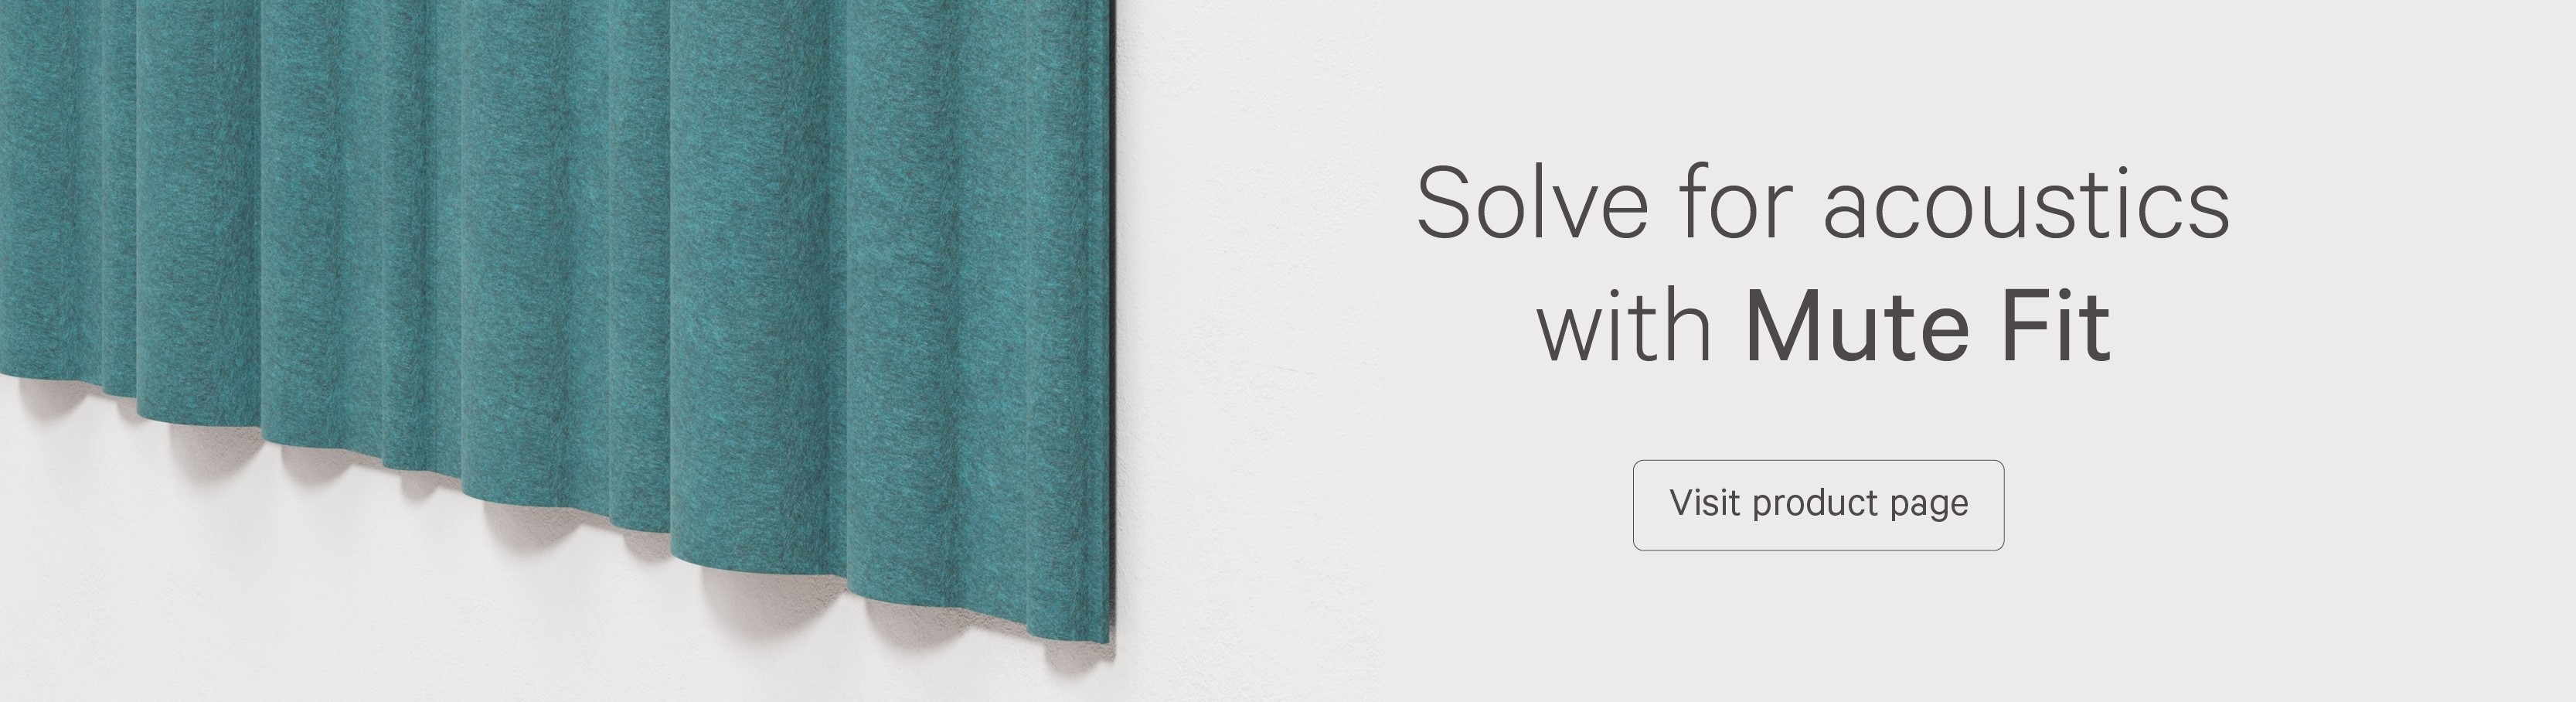 The Science Behind Mute Fit, a Smart Acoustic Panel